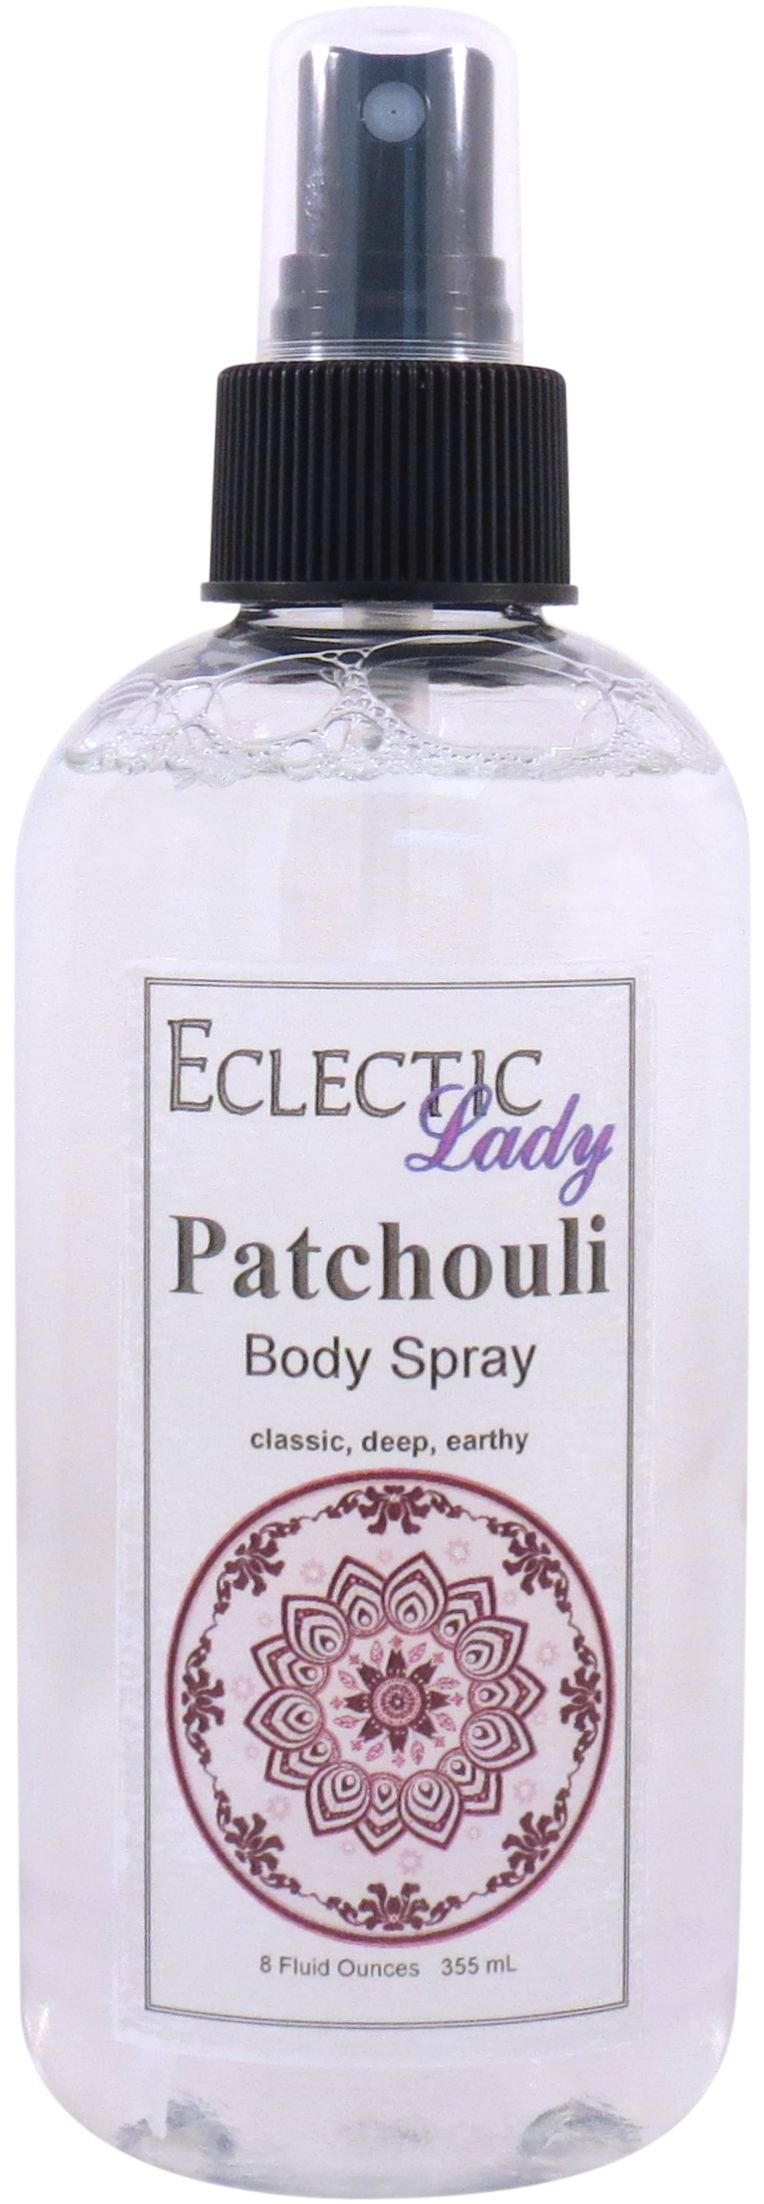 Patchouli Body Spray, 8 ounces